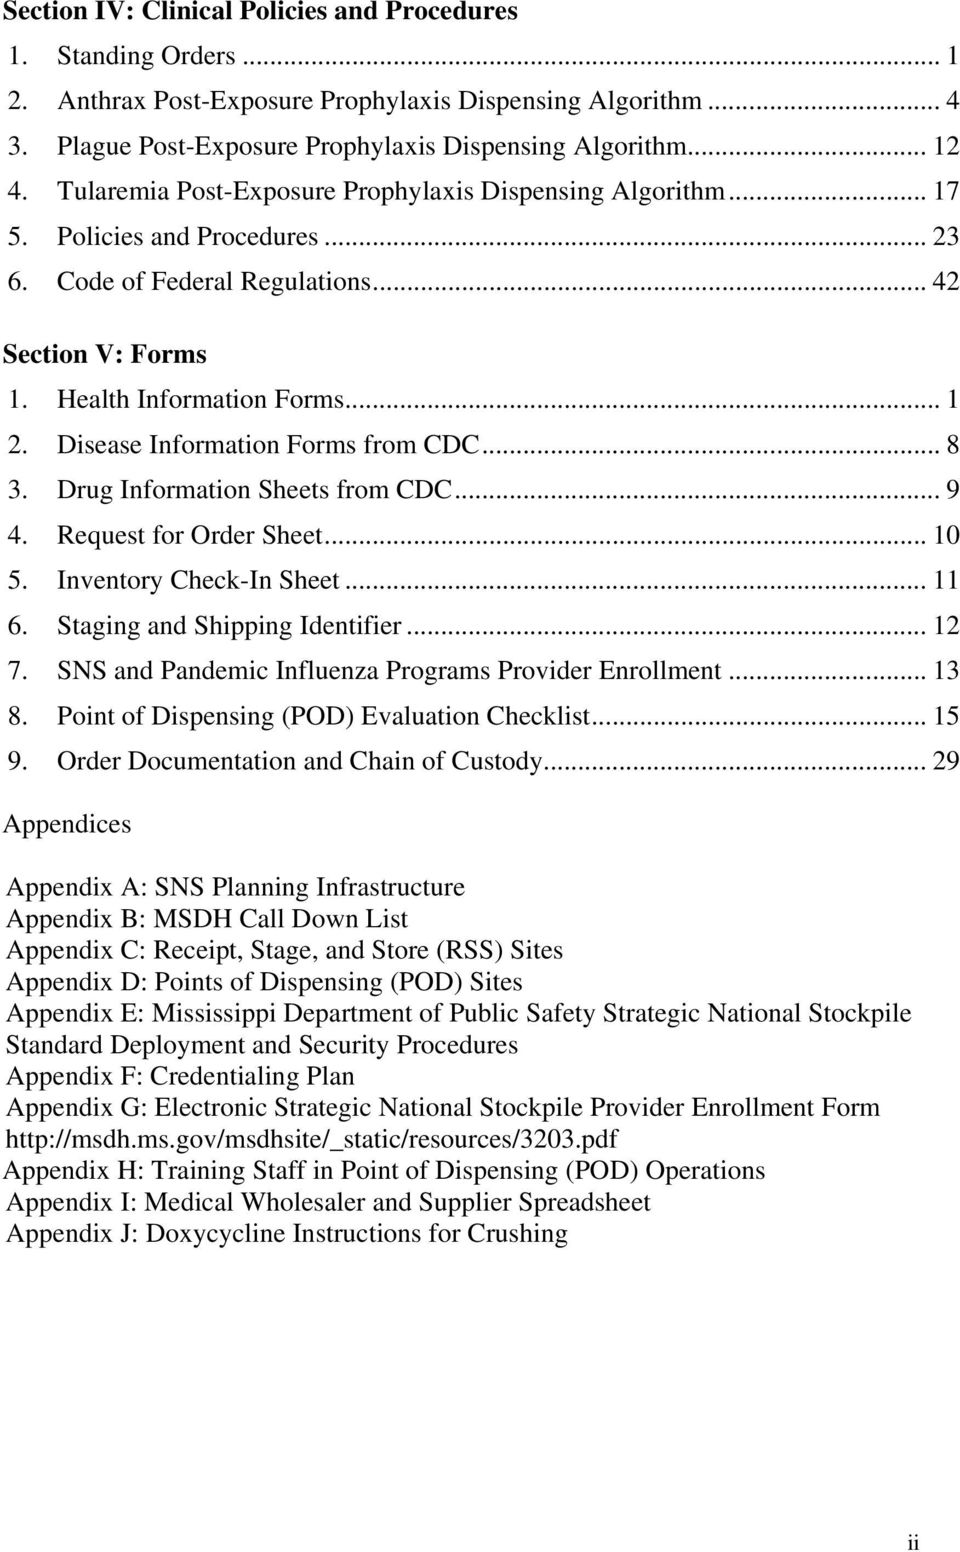 Disease Information Forms from CDC... 8 3. Drug Information Sheets from CDC... 9 4. Request for Order Sheet... 10 5. Inventory Check-In Sheet... 11 6. Staging and Shipping Identifier... 12 7.